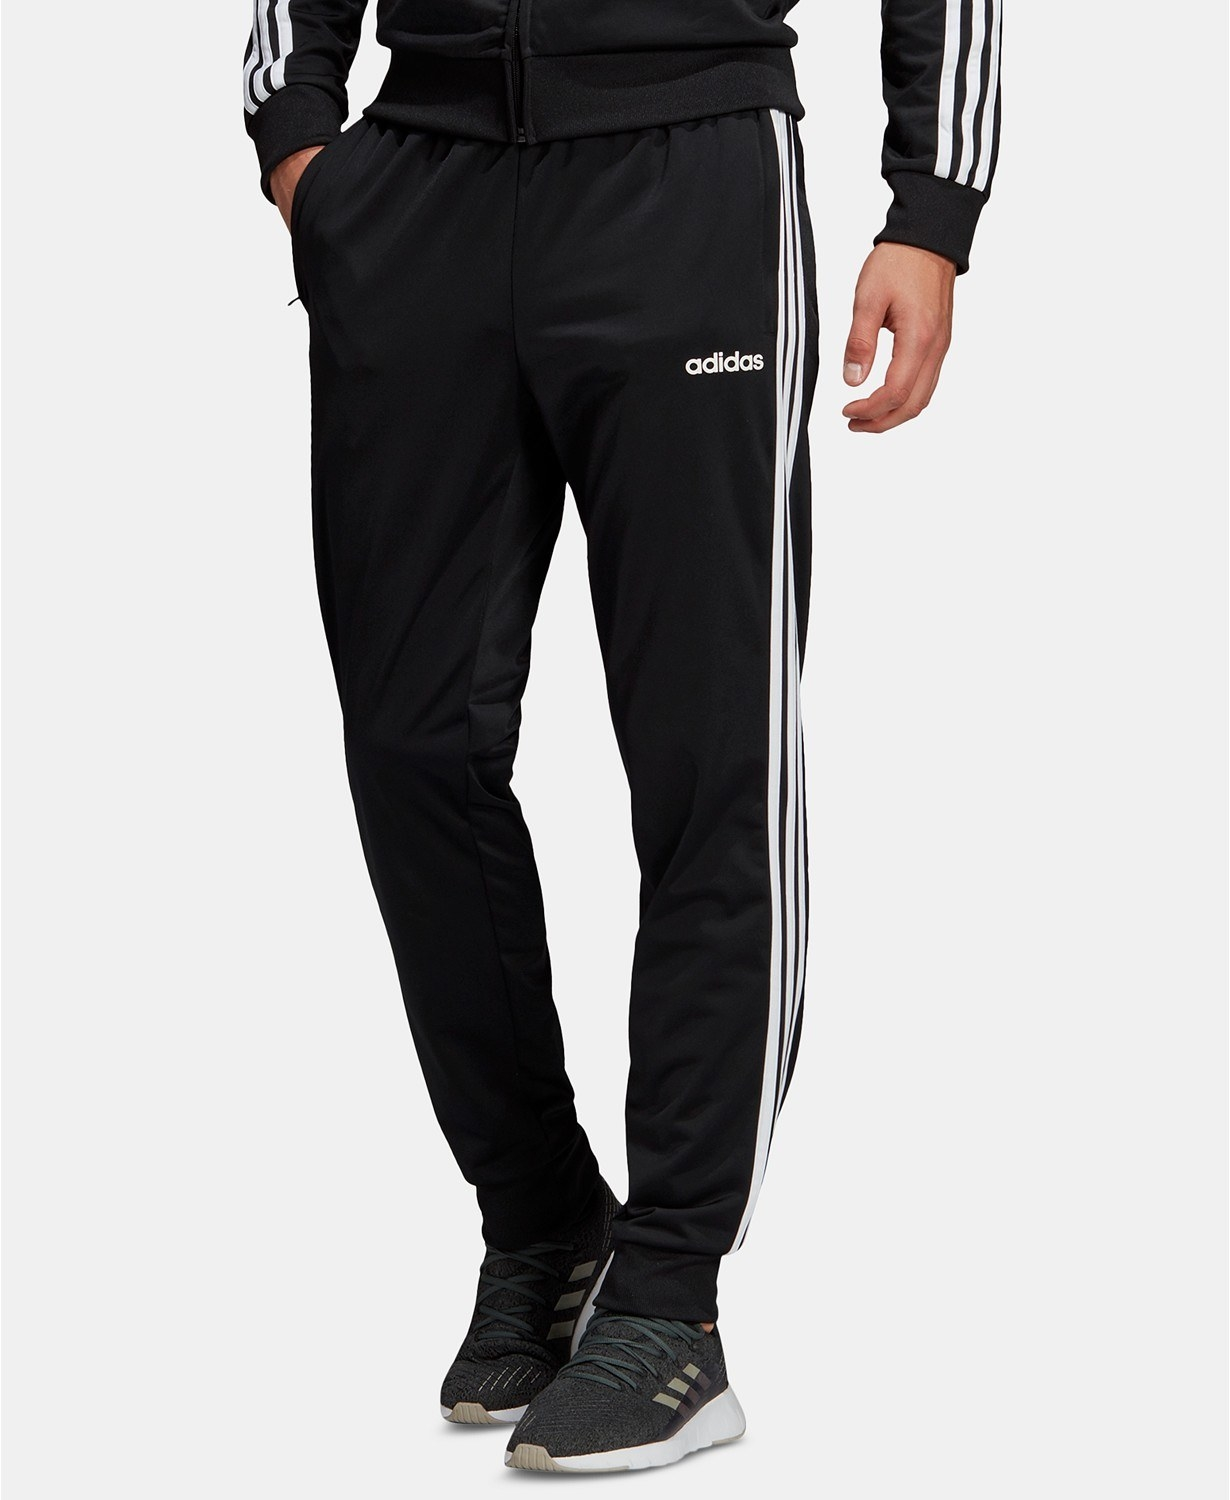 The joggers in black/white